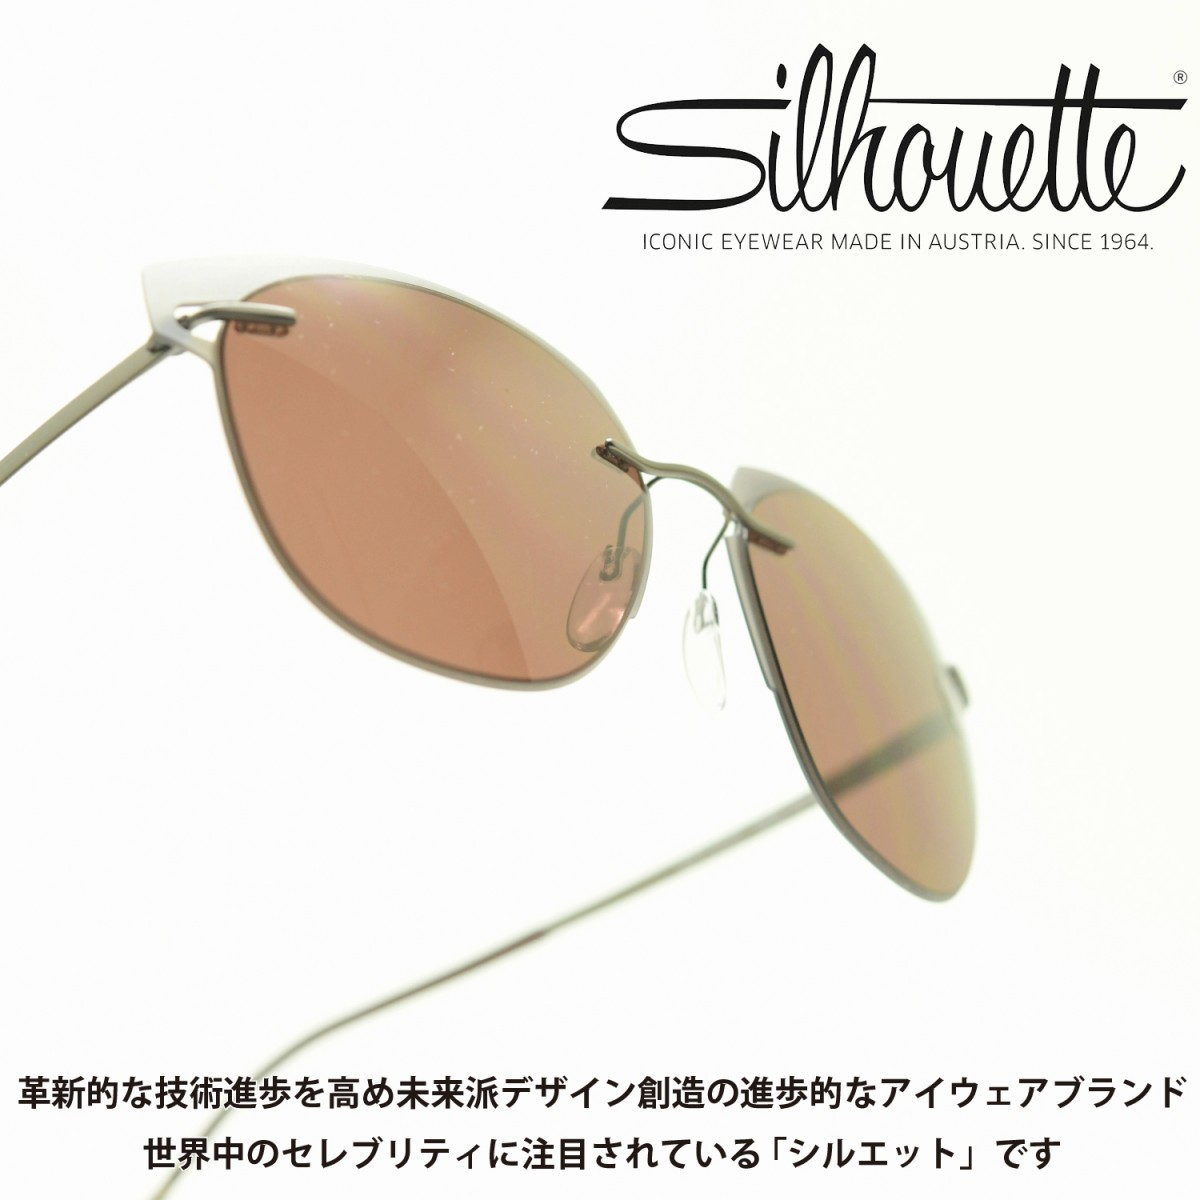 Silhouette シルエットAccent Shadesコレクション 8702 75 6560